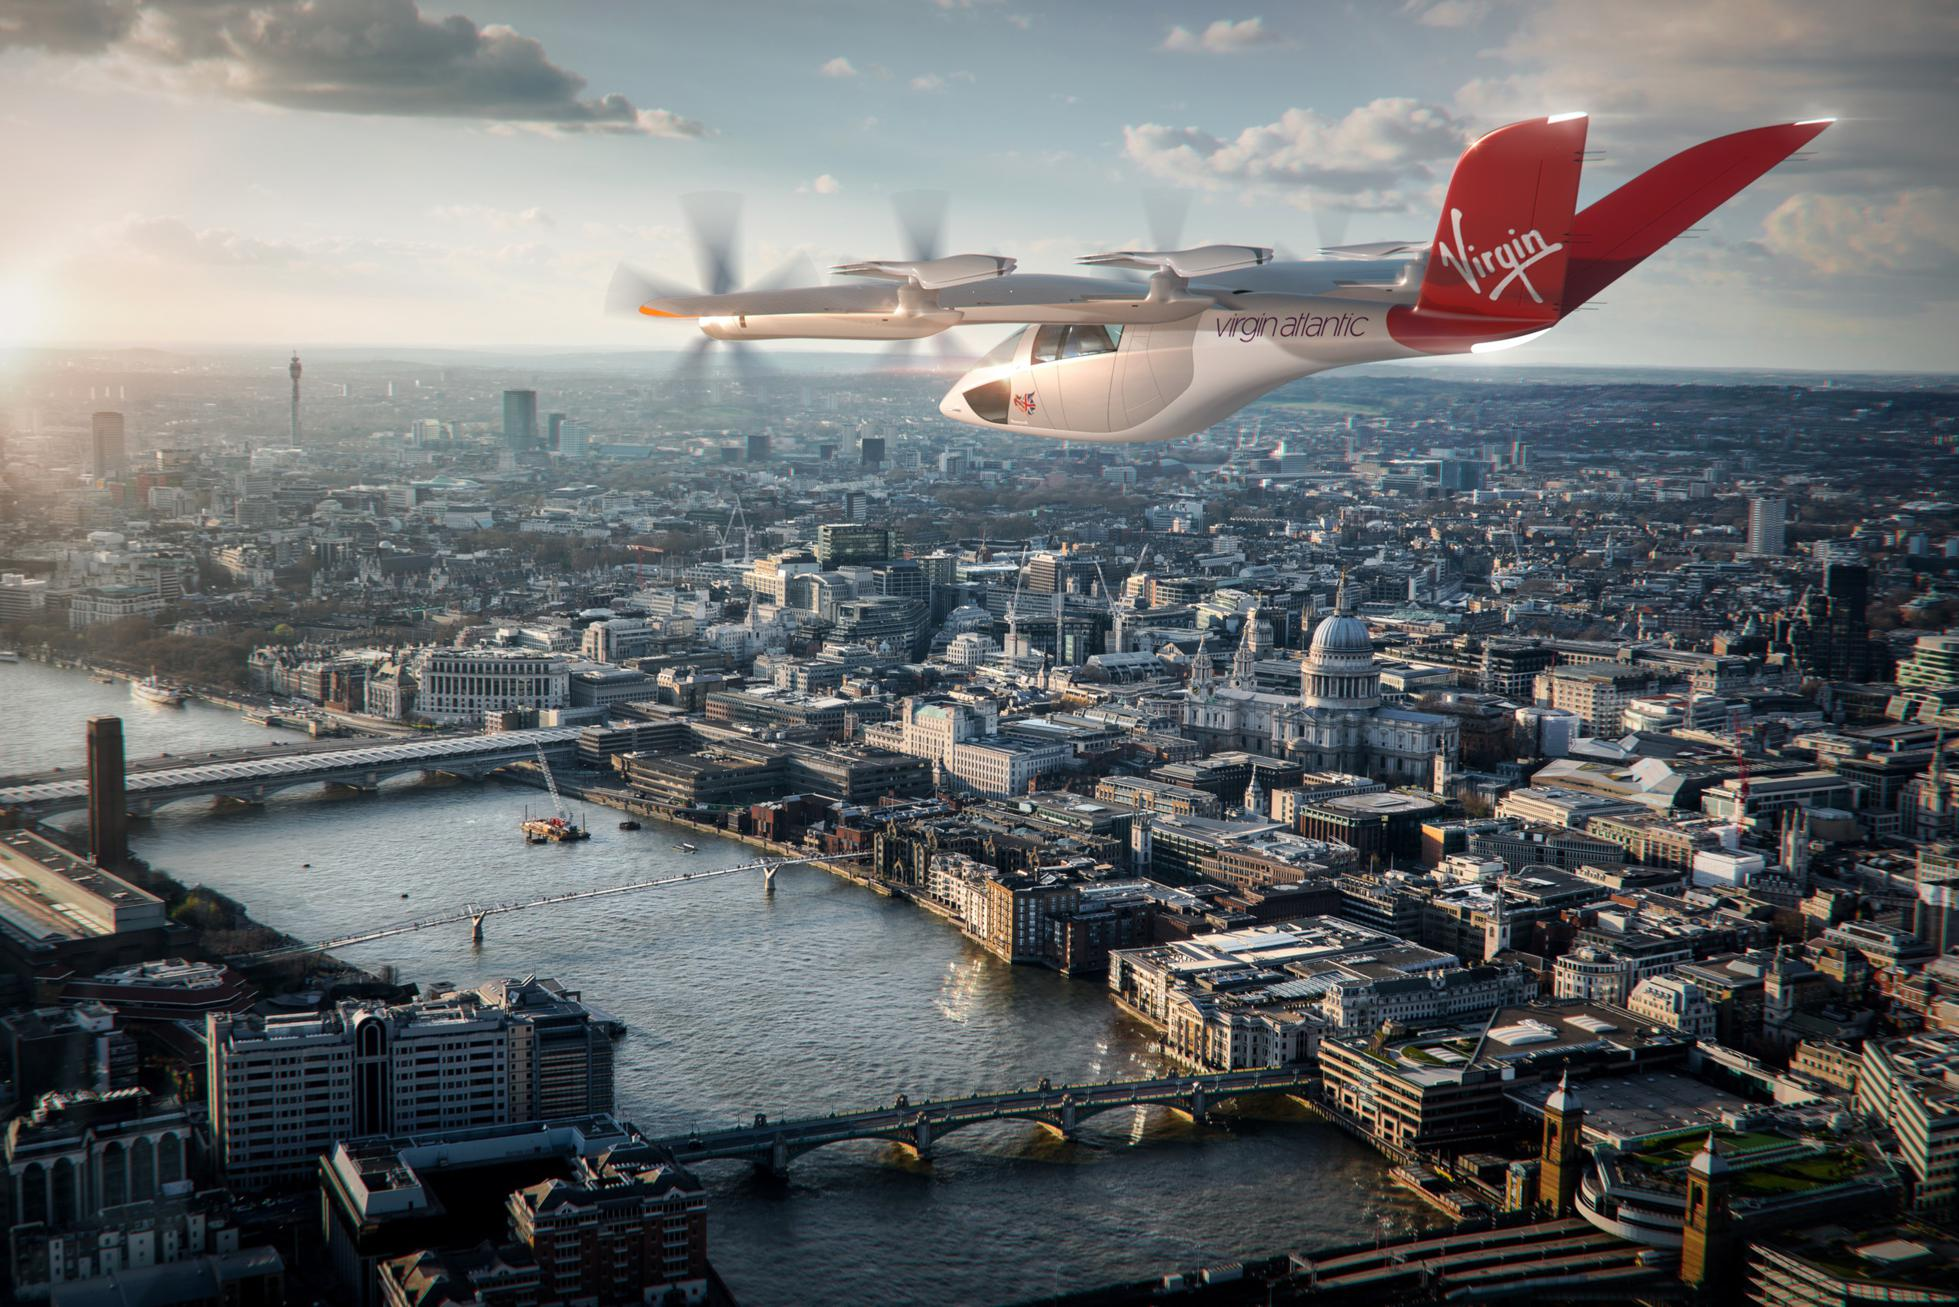 Virgin Atlantic has the option to purchase up to 150 aircraft.